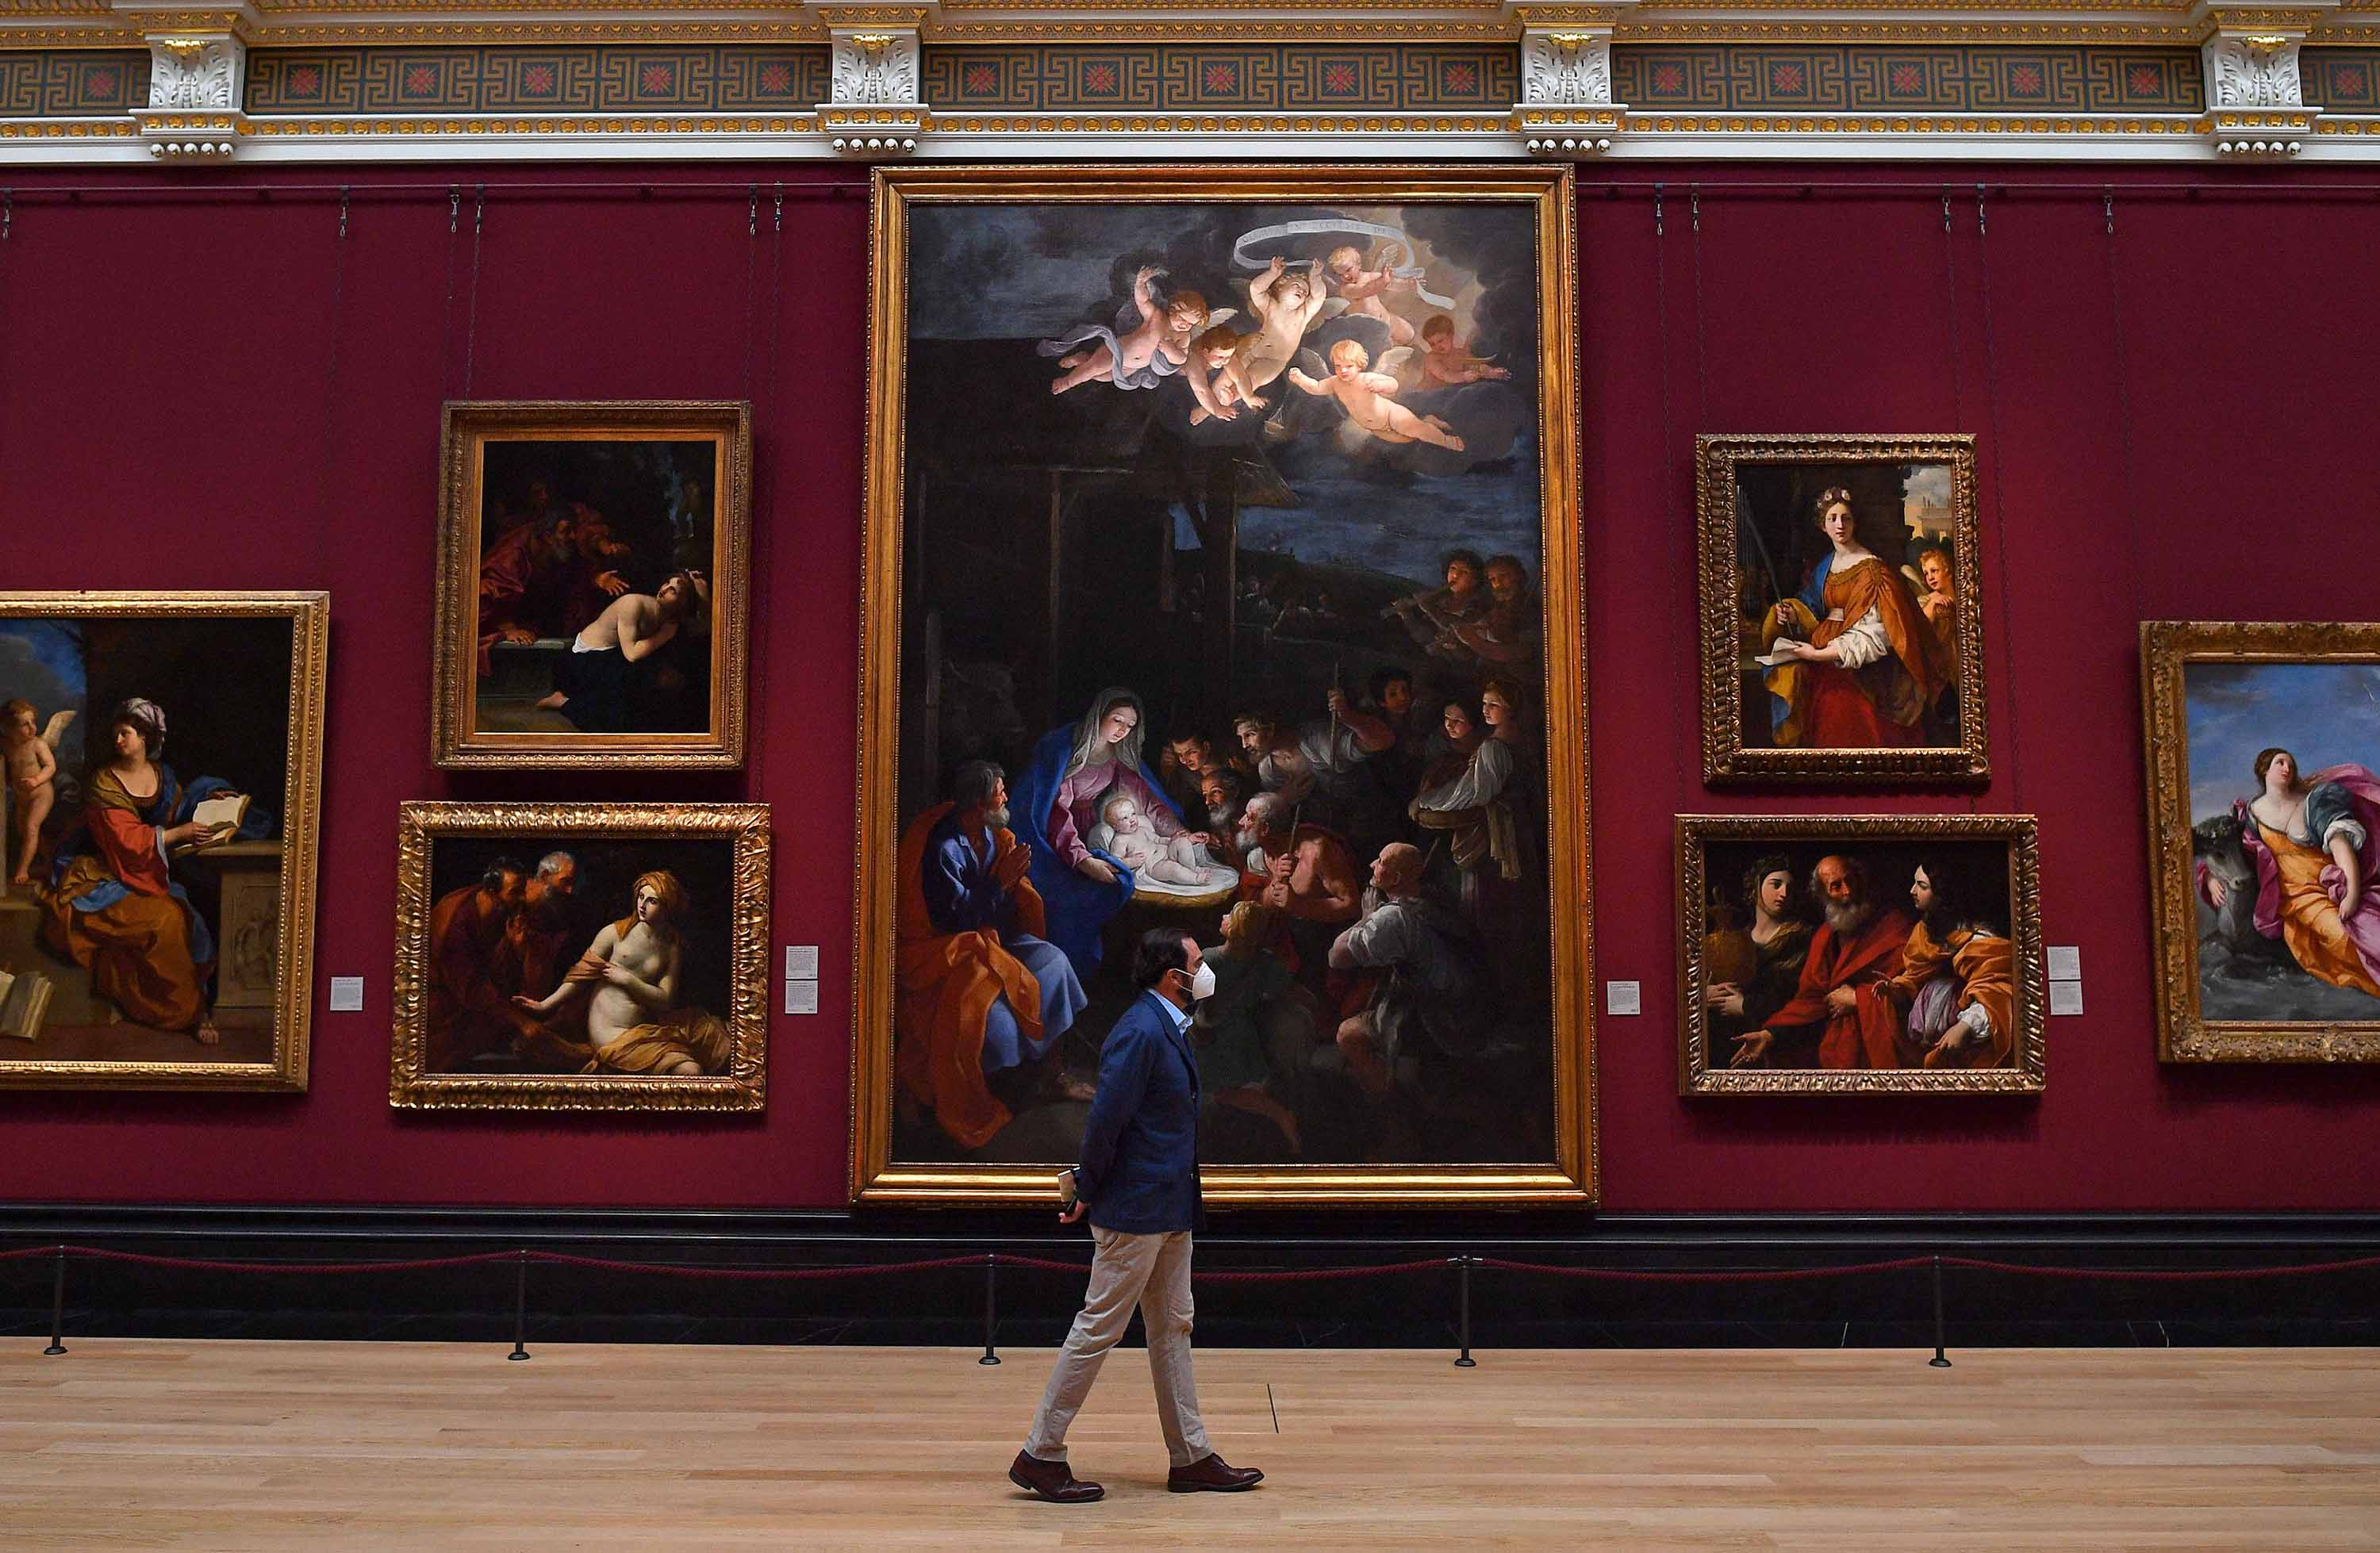 A member of staff wearing a protective face mask patrols a room inside the National Gallery in London on July 4, as the gallery prepares to reopen on July 8, following the easing of restrictions imposed during the novel coronavirus pandemic.